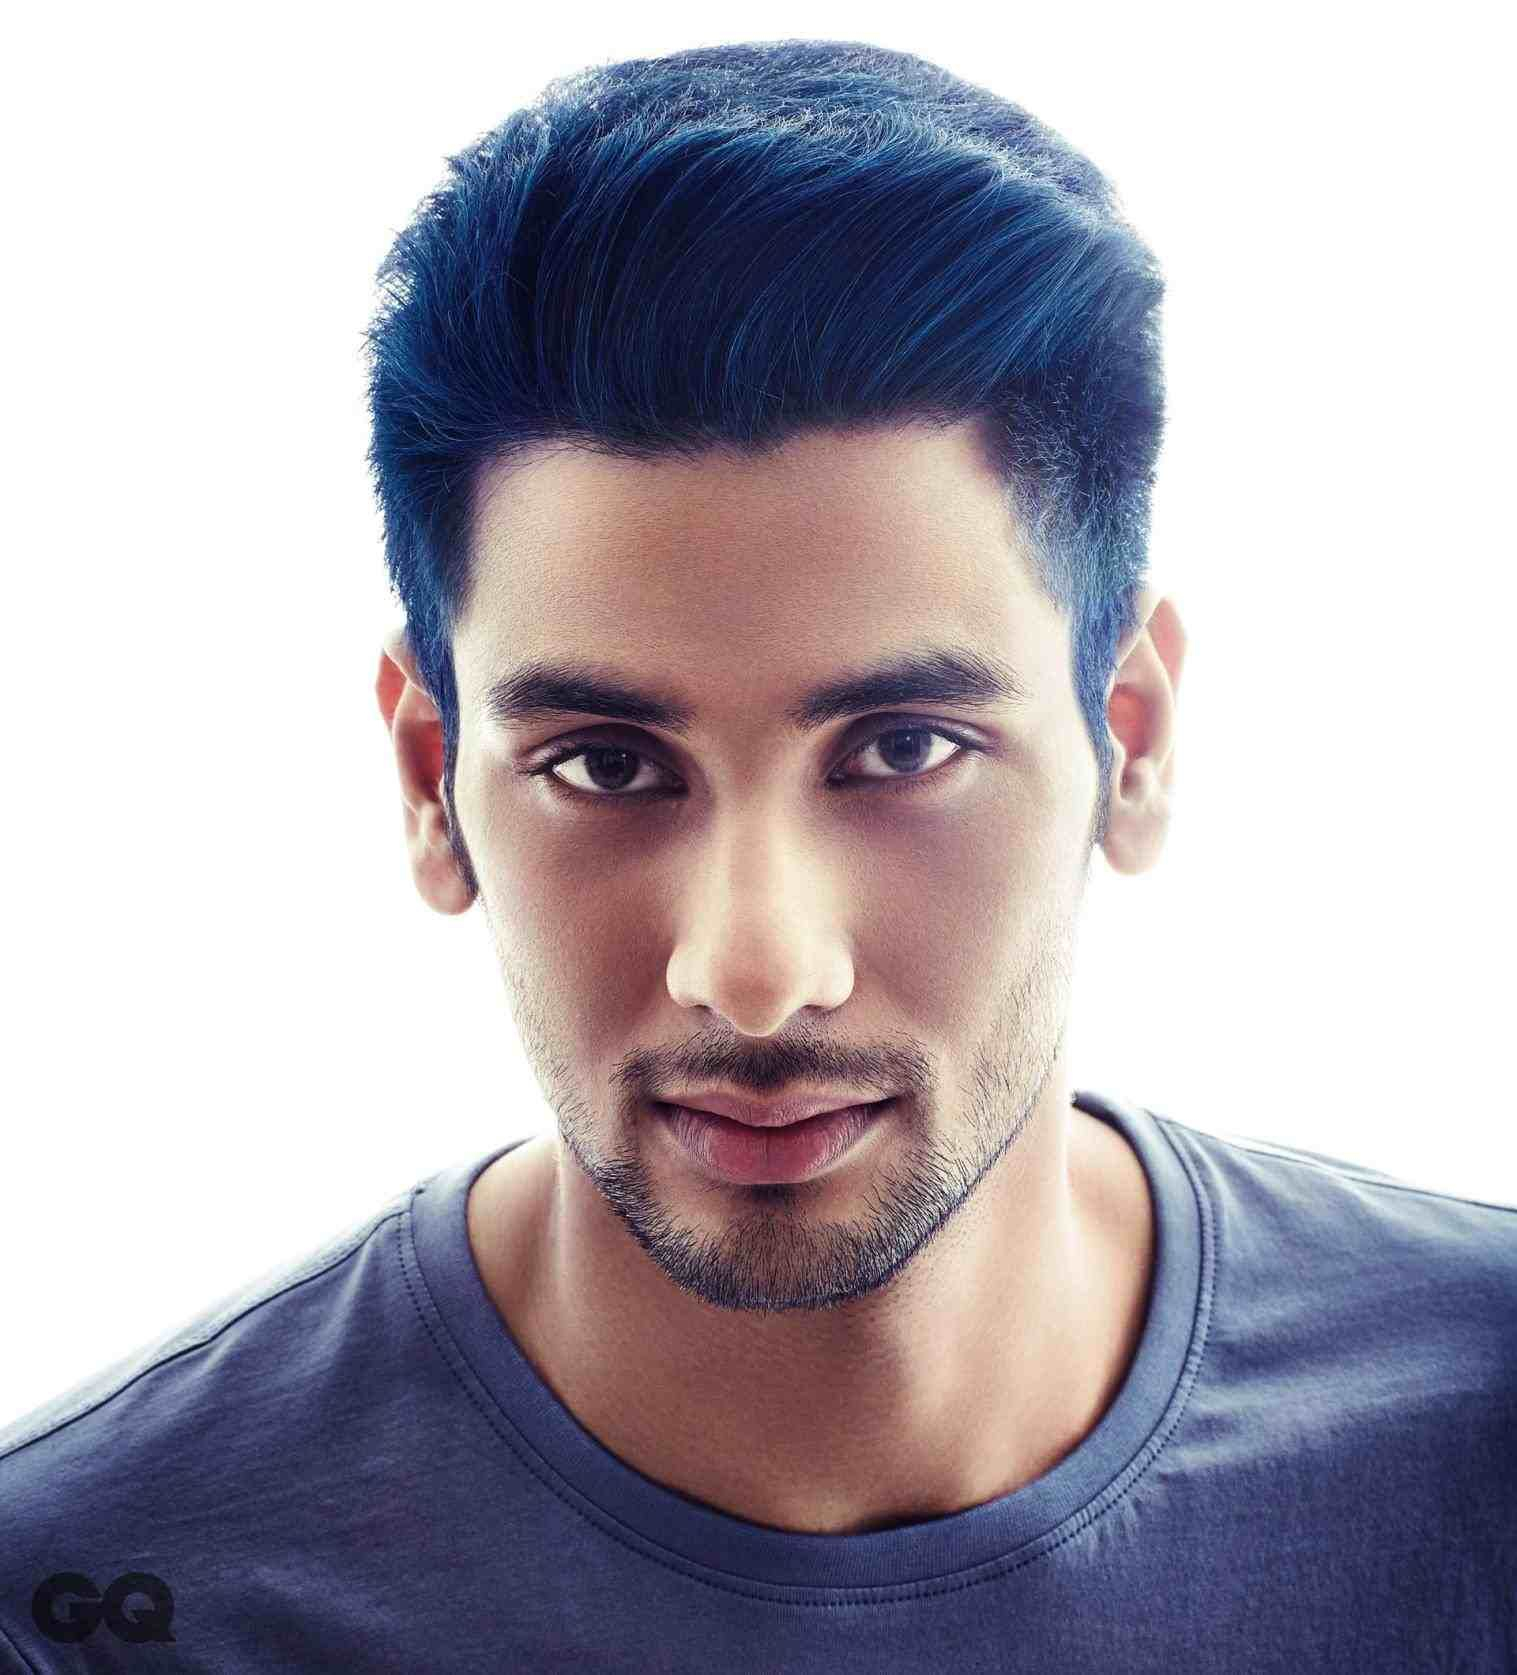 Hair Color Dark Blue For Men Hair Stylist And Models Pinterest